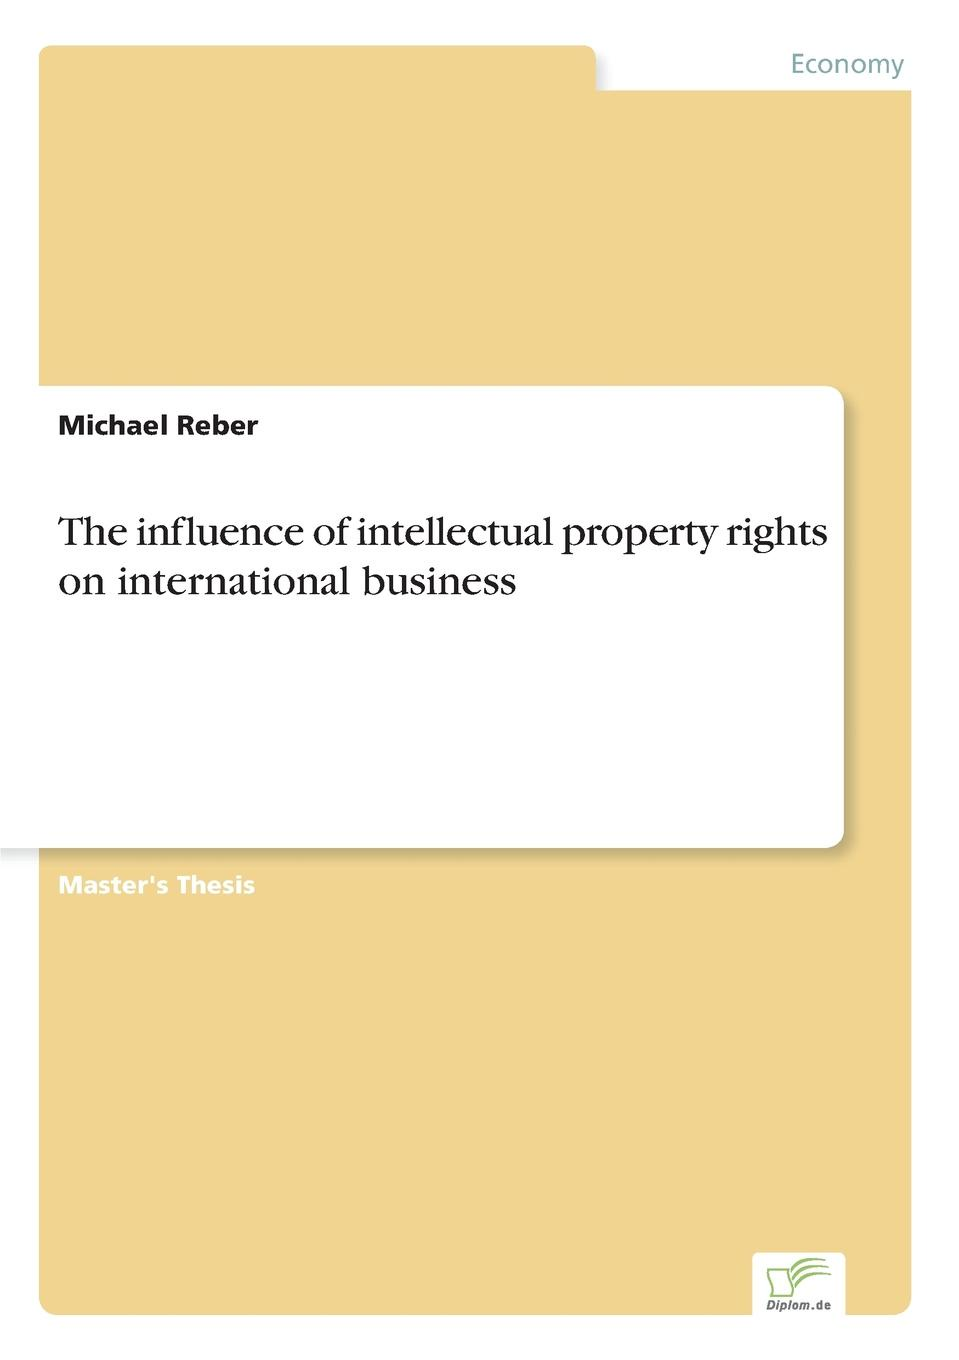 Michael Reber The influence of intellectual property rights on international business patrick sullivan h edison in the boardroom revisited how leading companies realize value from their intellectual property